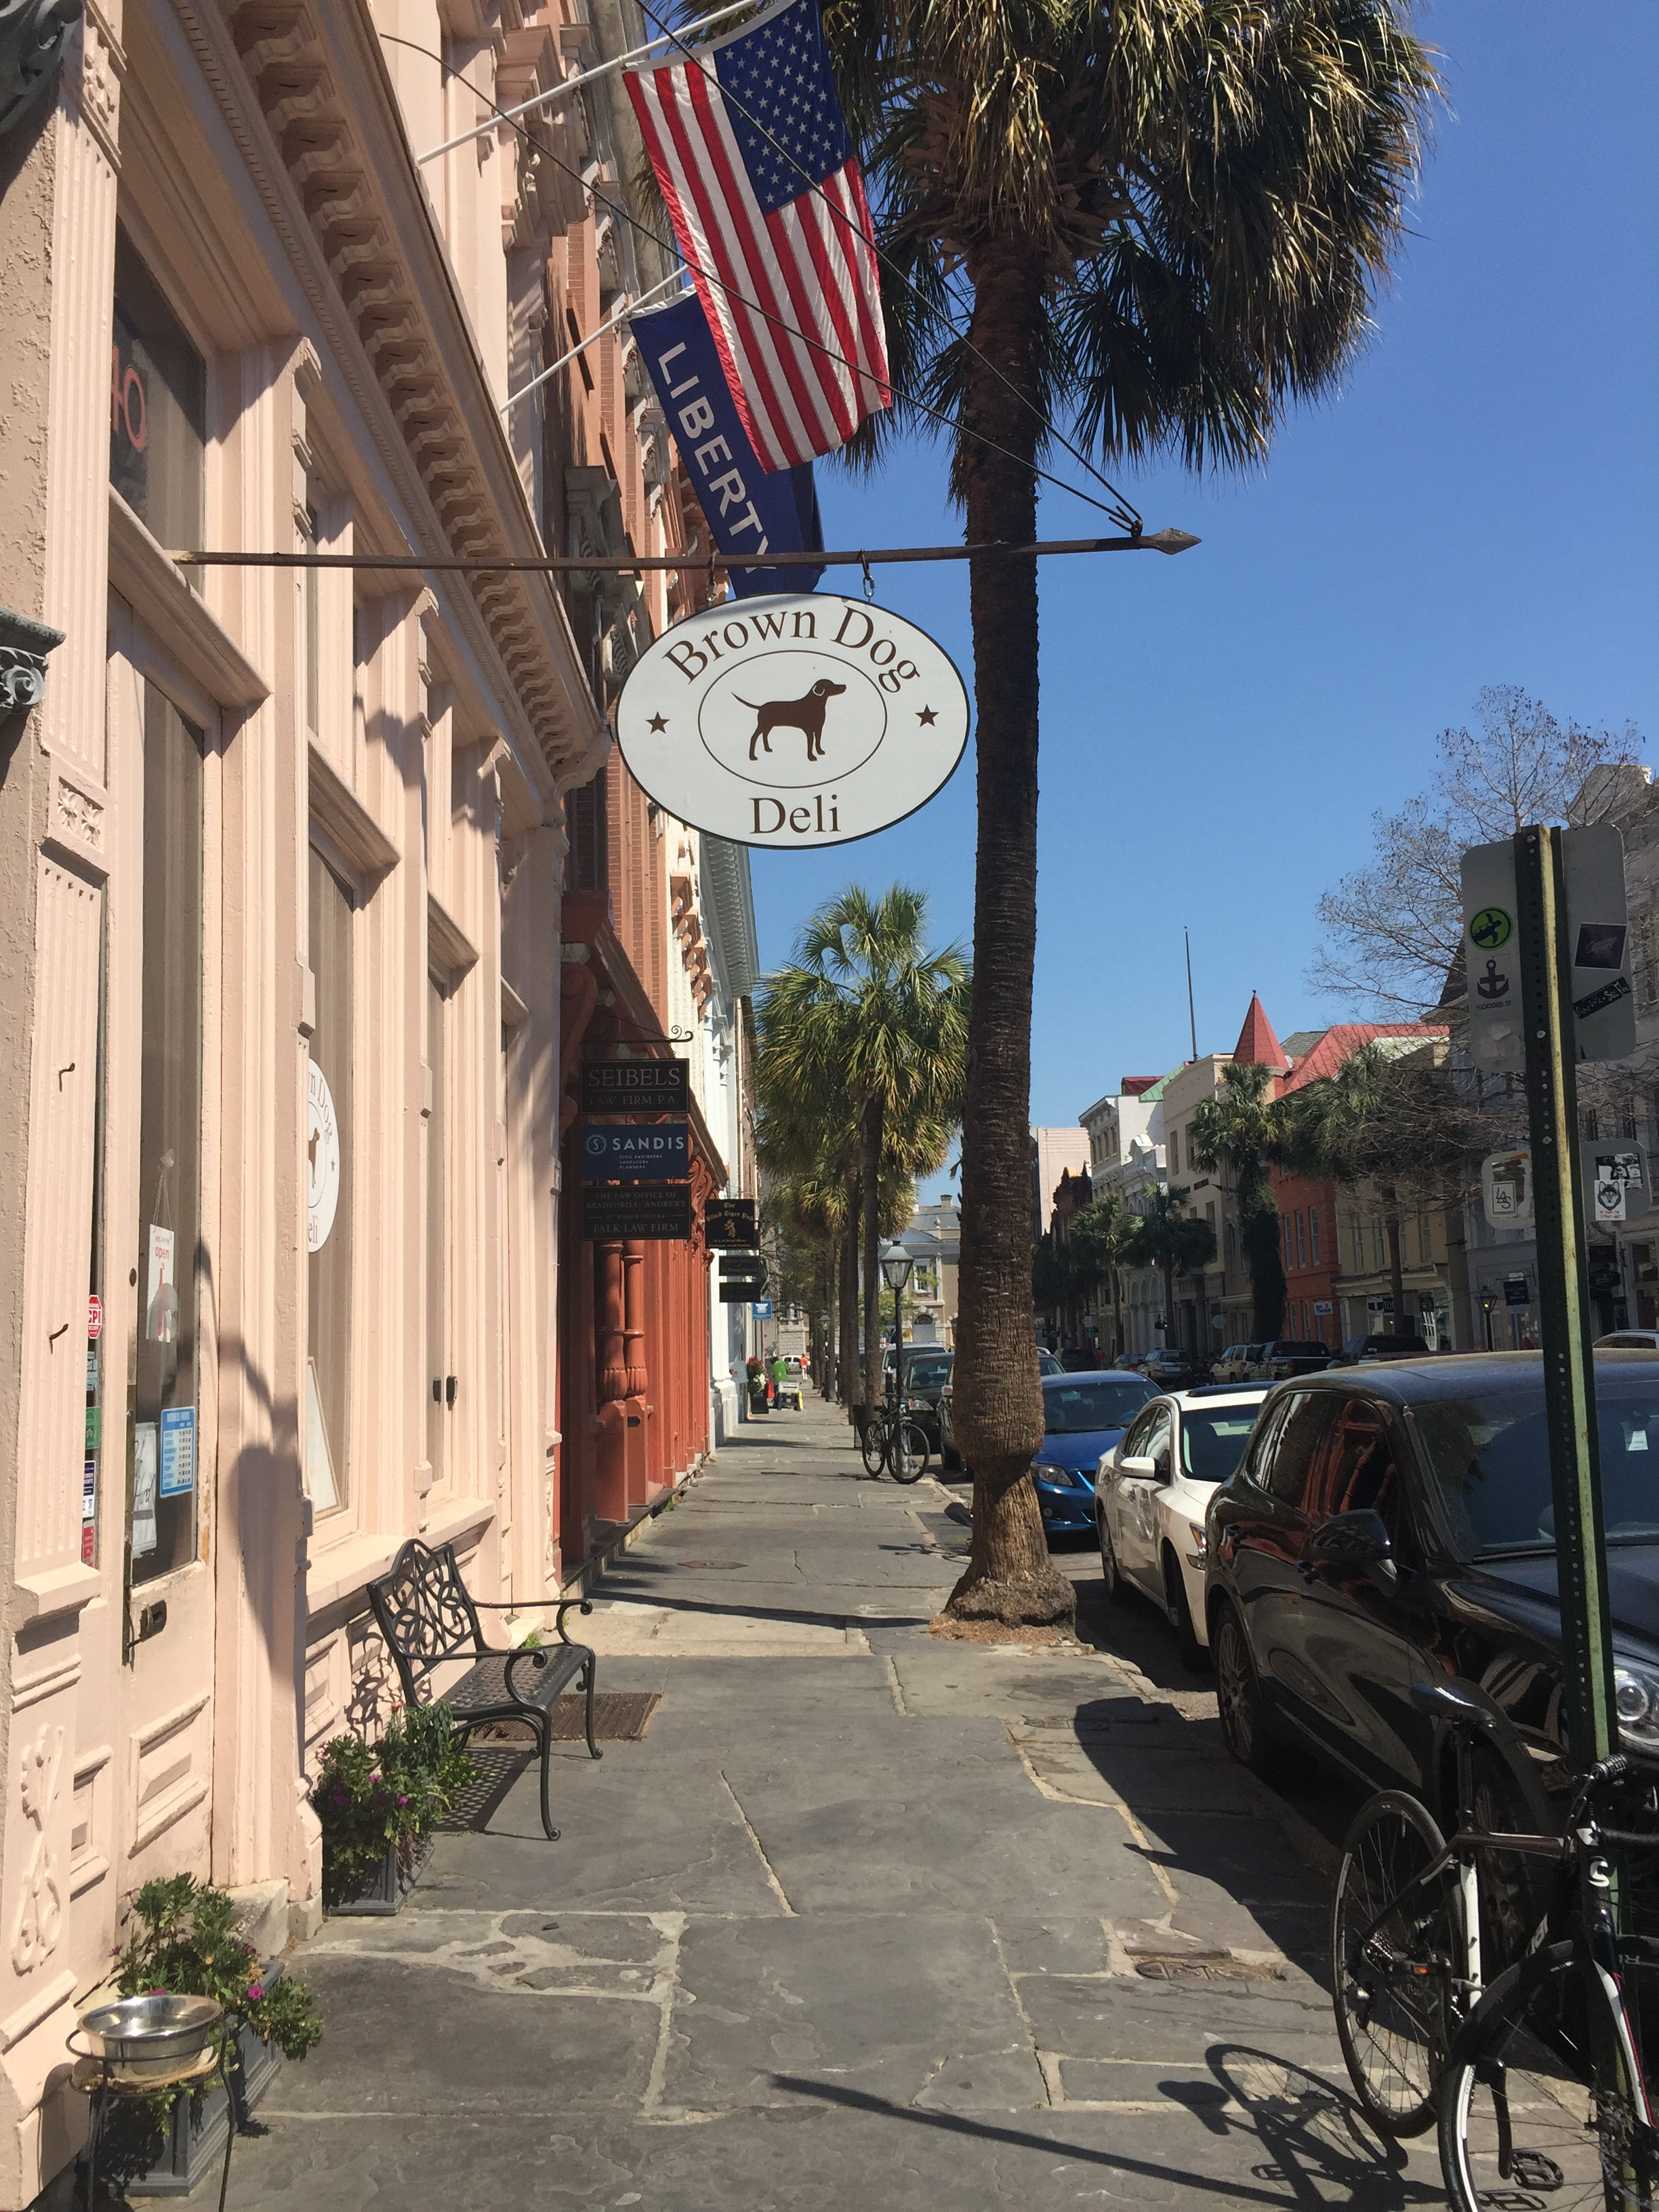 Outside of Brown Dog Deli Charleston SC Gluten Free Restaurant